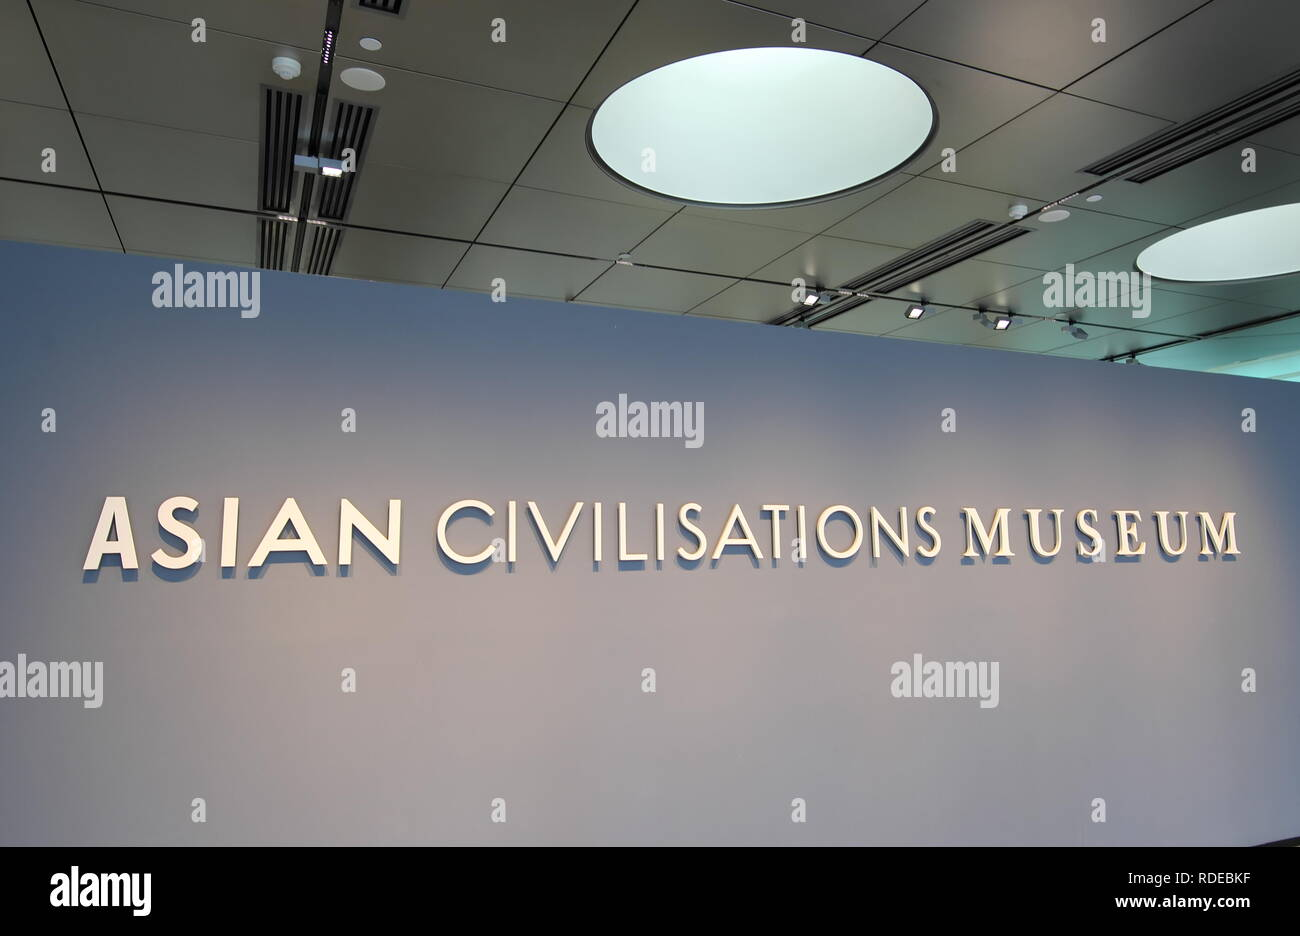 Asian Civilisations Museum. Asian Civilisations Museum is specialising pan-Asian cultures and civilisations established in 1997. - Stock Image